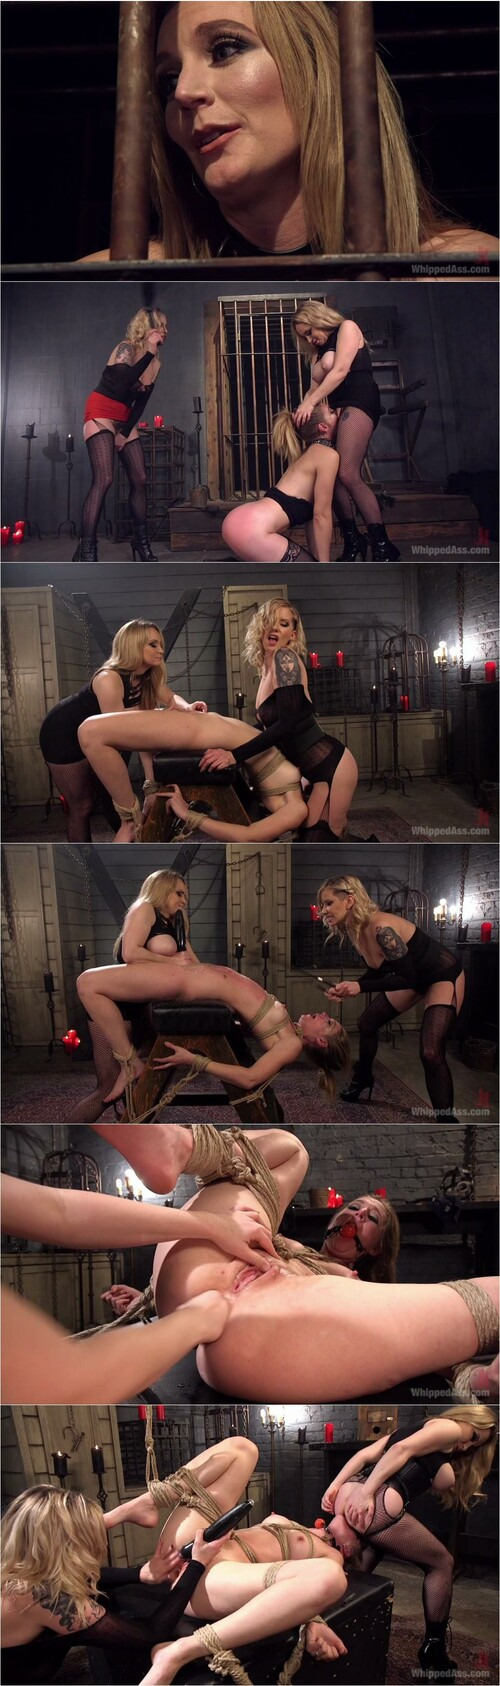 16.02.12-39564-Maitresse-Madeline-Marlowe-Aiden-Starr-Mona-Wales---Maitresse-Madeline-and-Aiden-Starr-haze-domme-and-fuck-Mona-Wales_cover_m.jpg